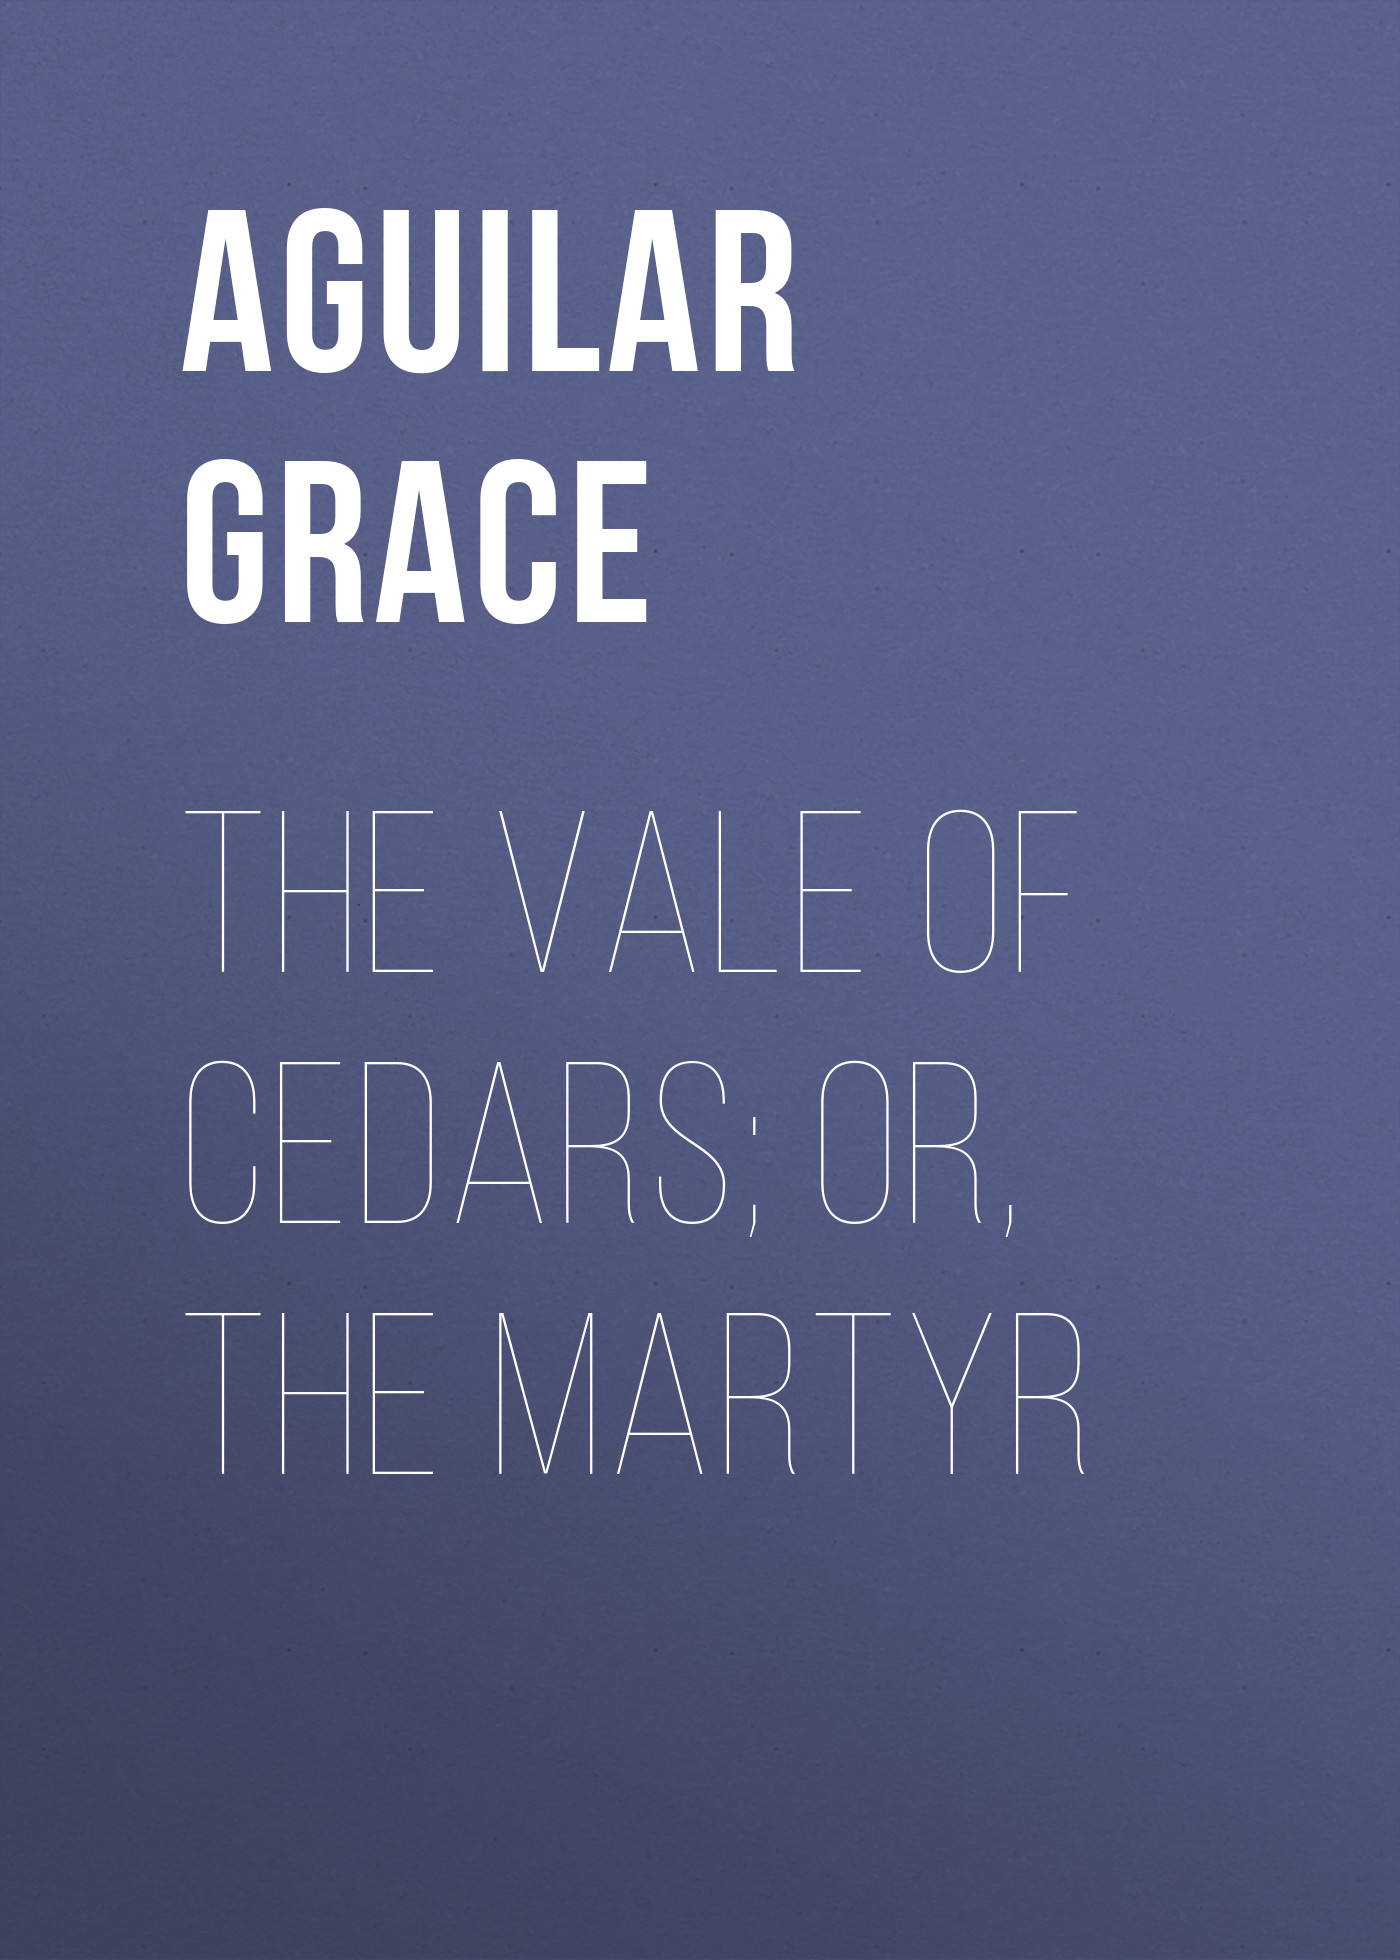 Aguilar Grace The Vale of Cedars; Or, The Martyr grace free costly or cheap